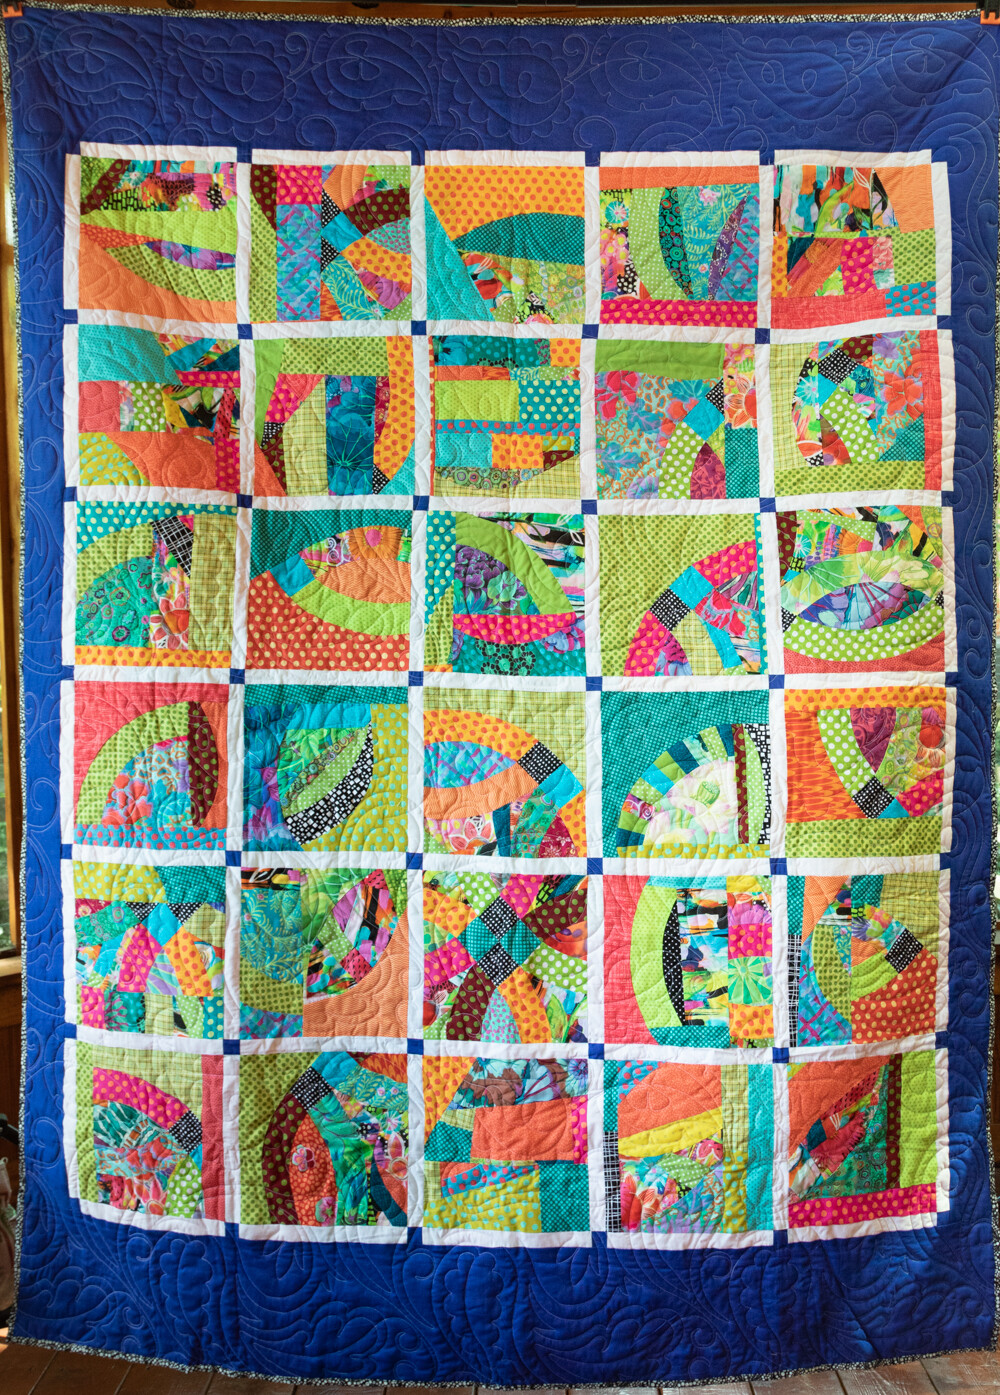 Quilt #60 - Curved Square